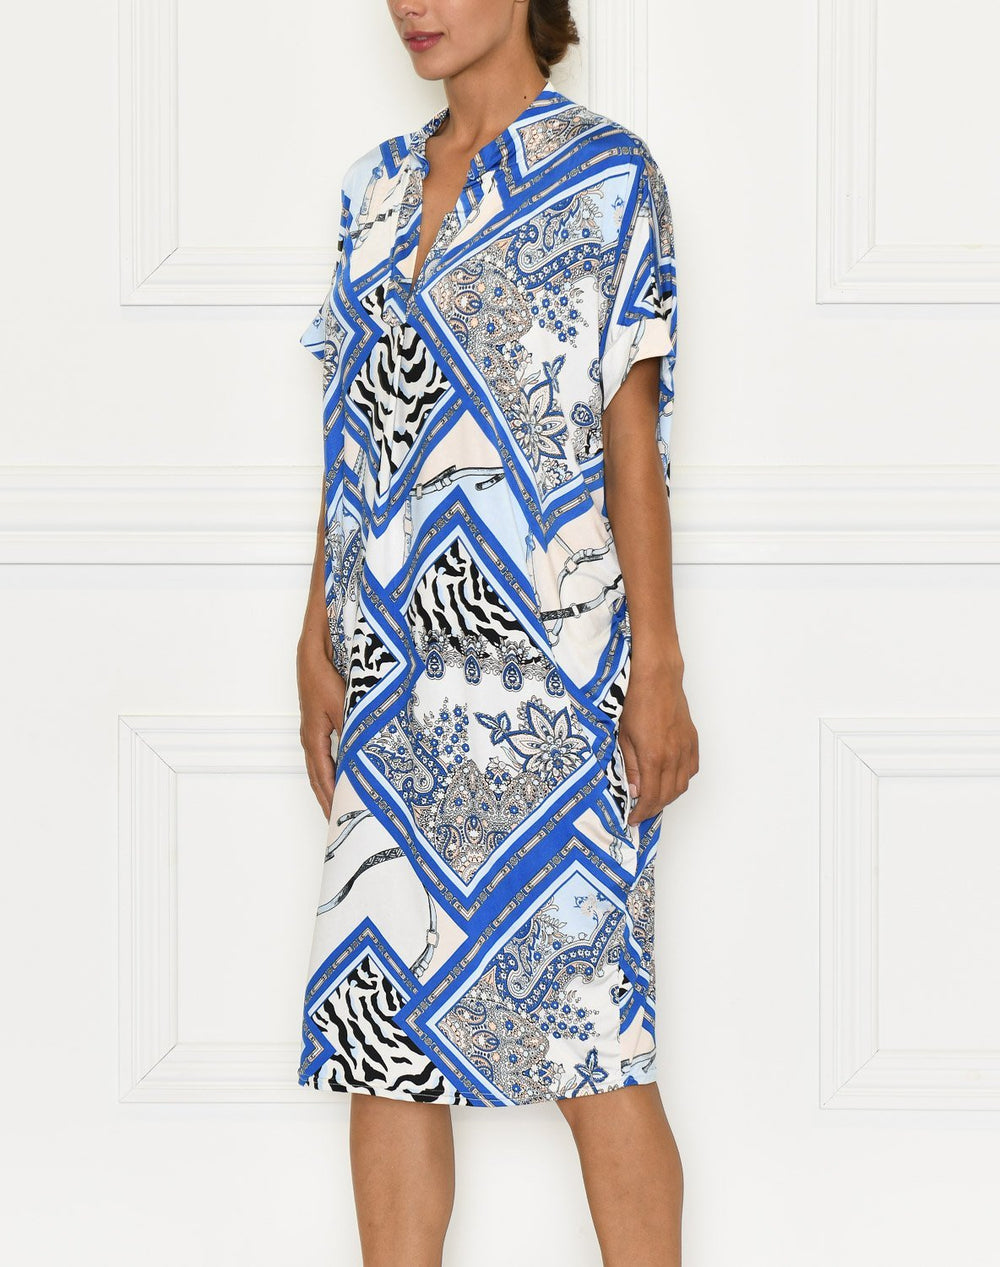 Zora dress blue patterns - Online-Mode